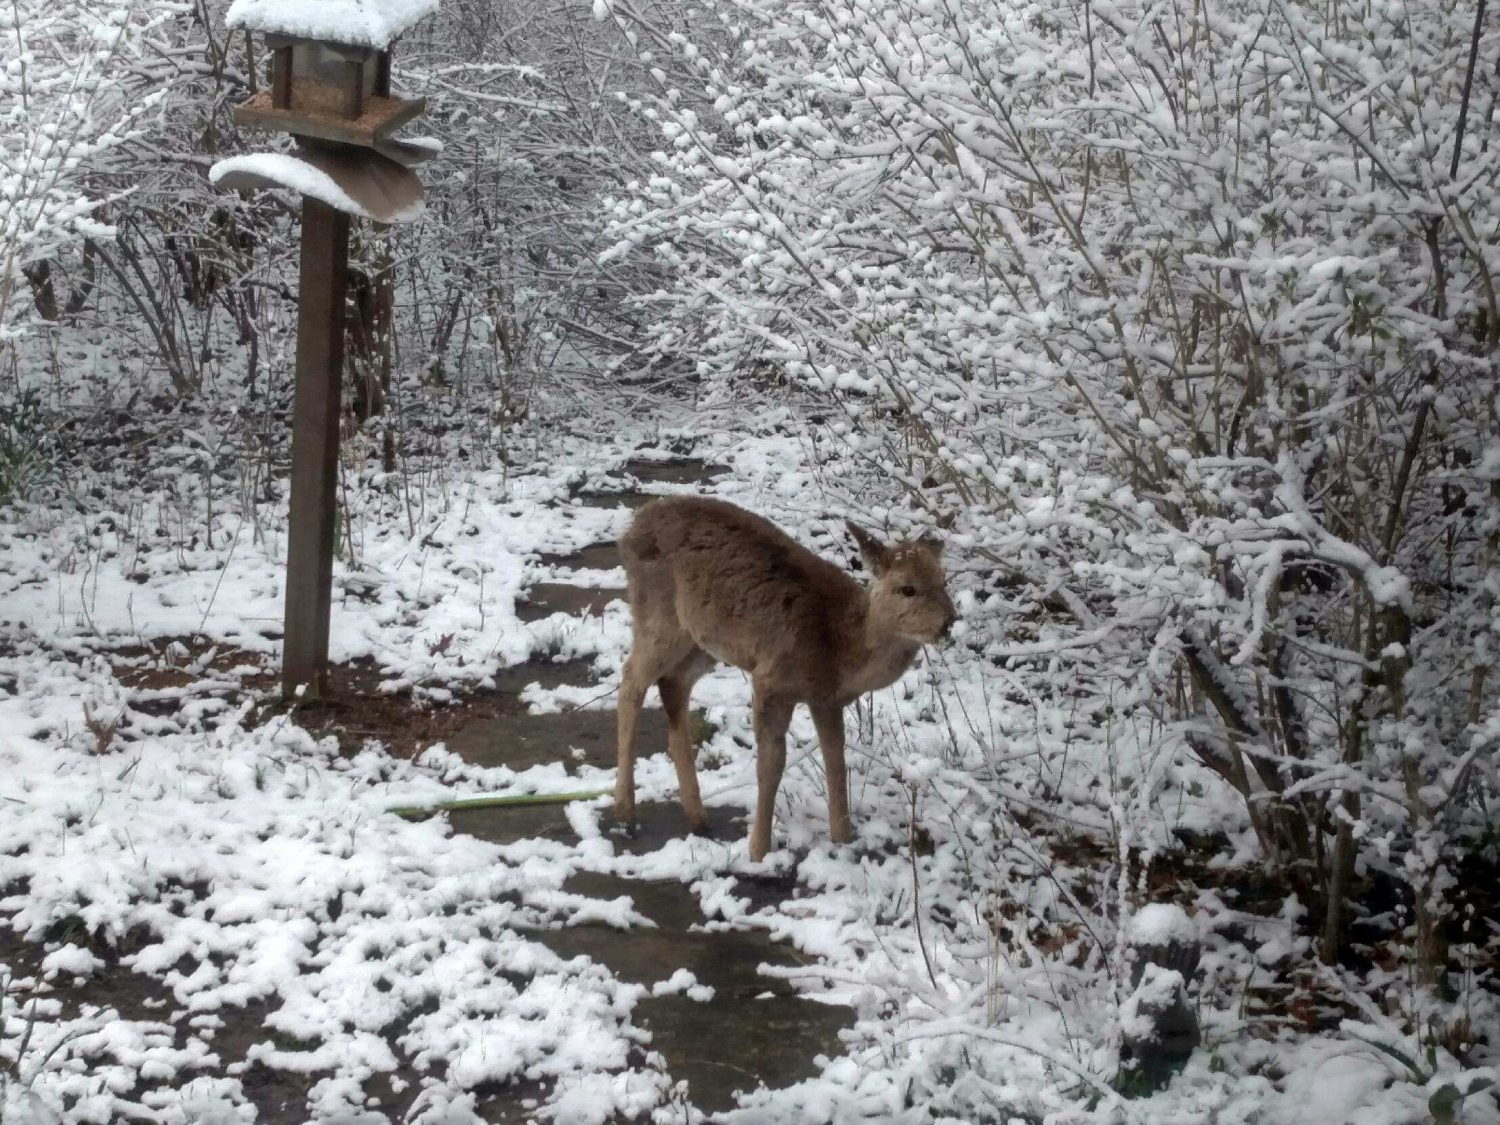 Deer walking on snowy path next to a bird feeder and snow-covered branches